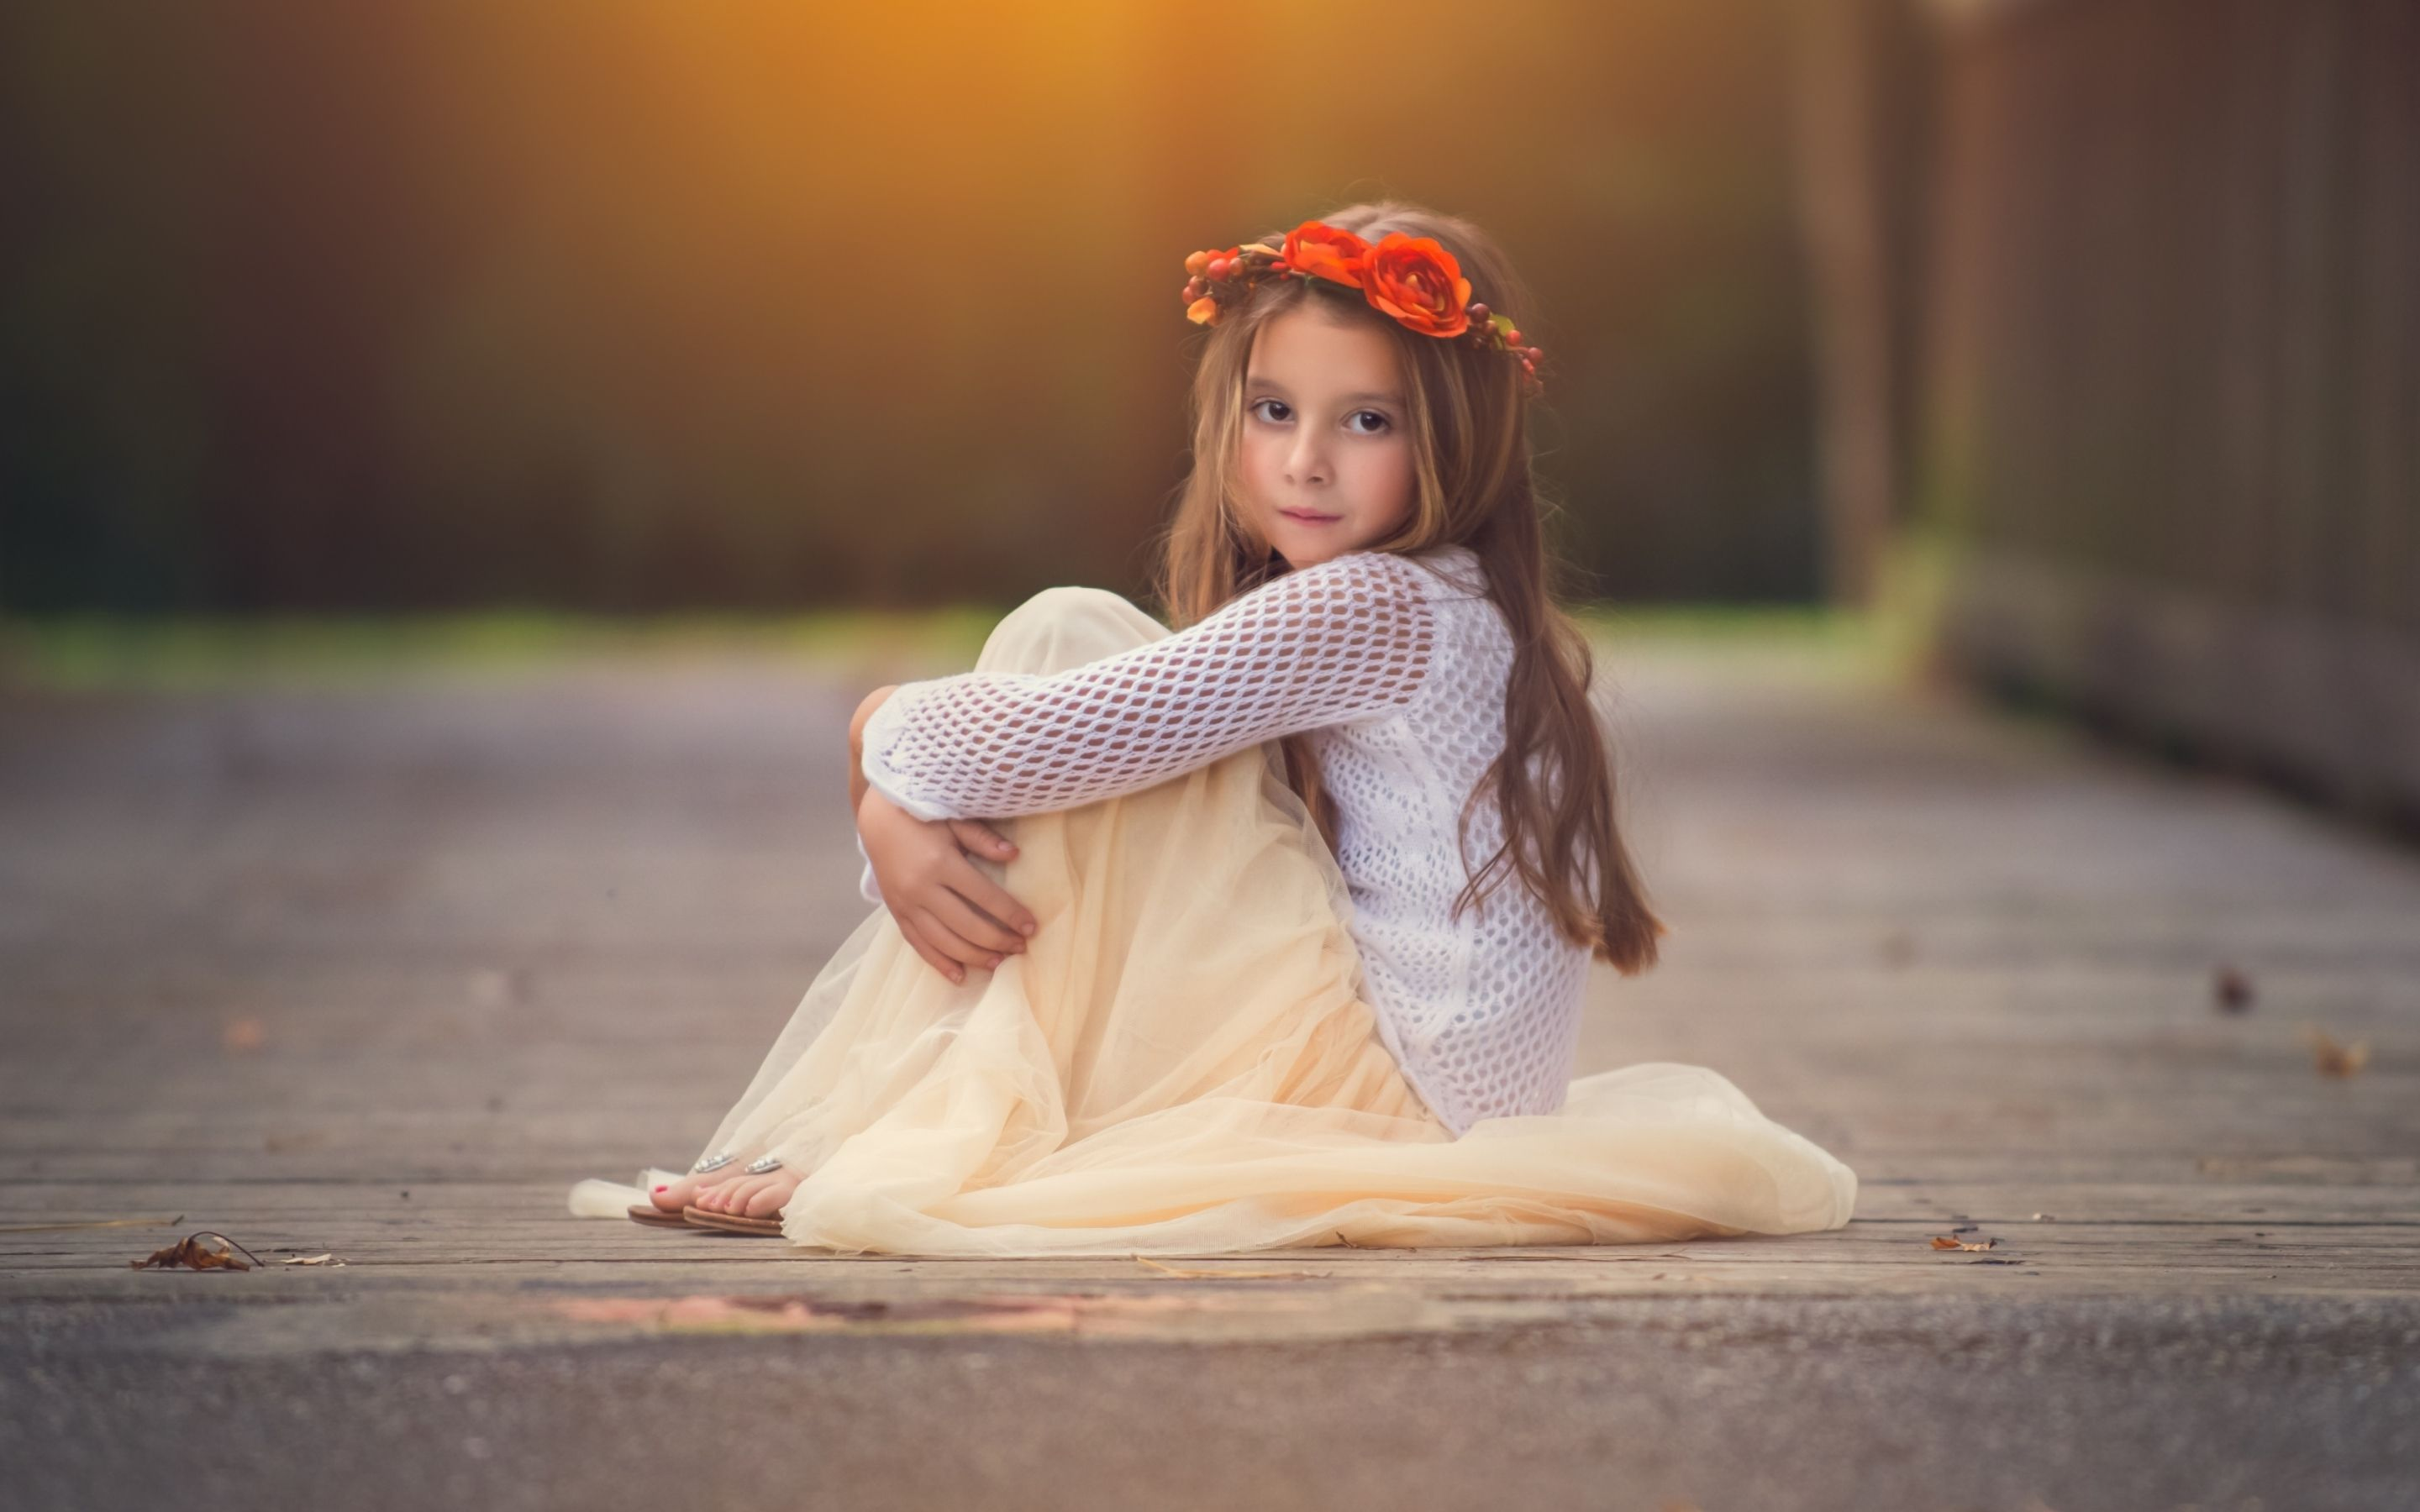 Cute baby girl hd wallpaper baby shower pinterest cute baby girl hd wallpaper voltagebd Image collections